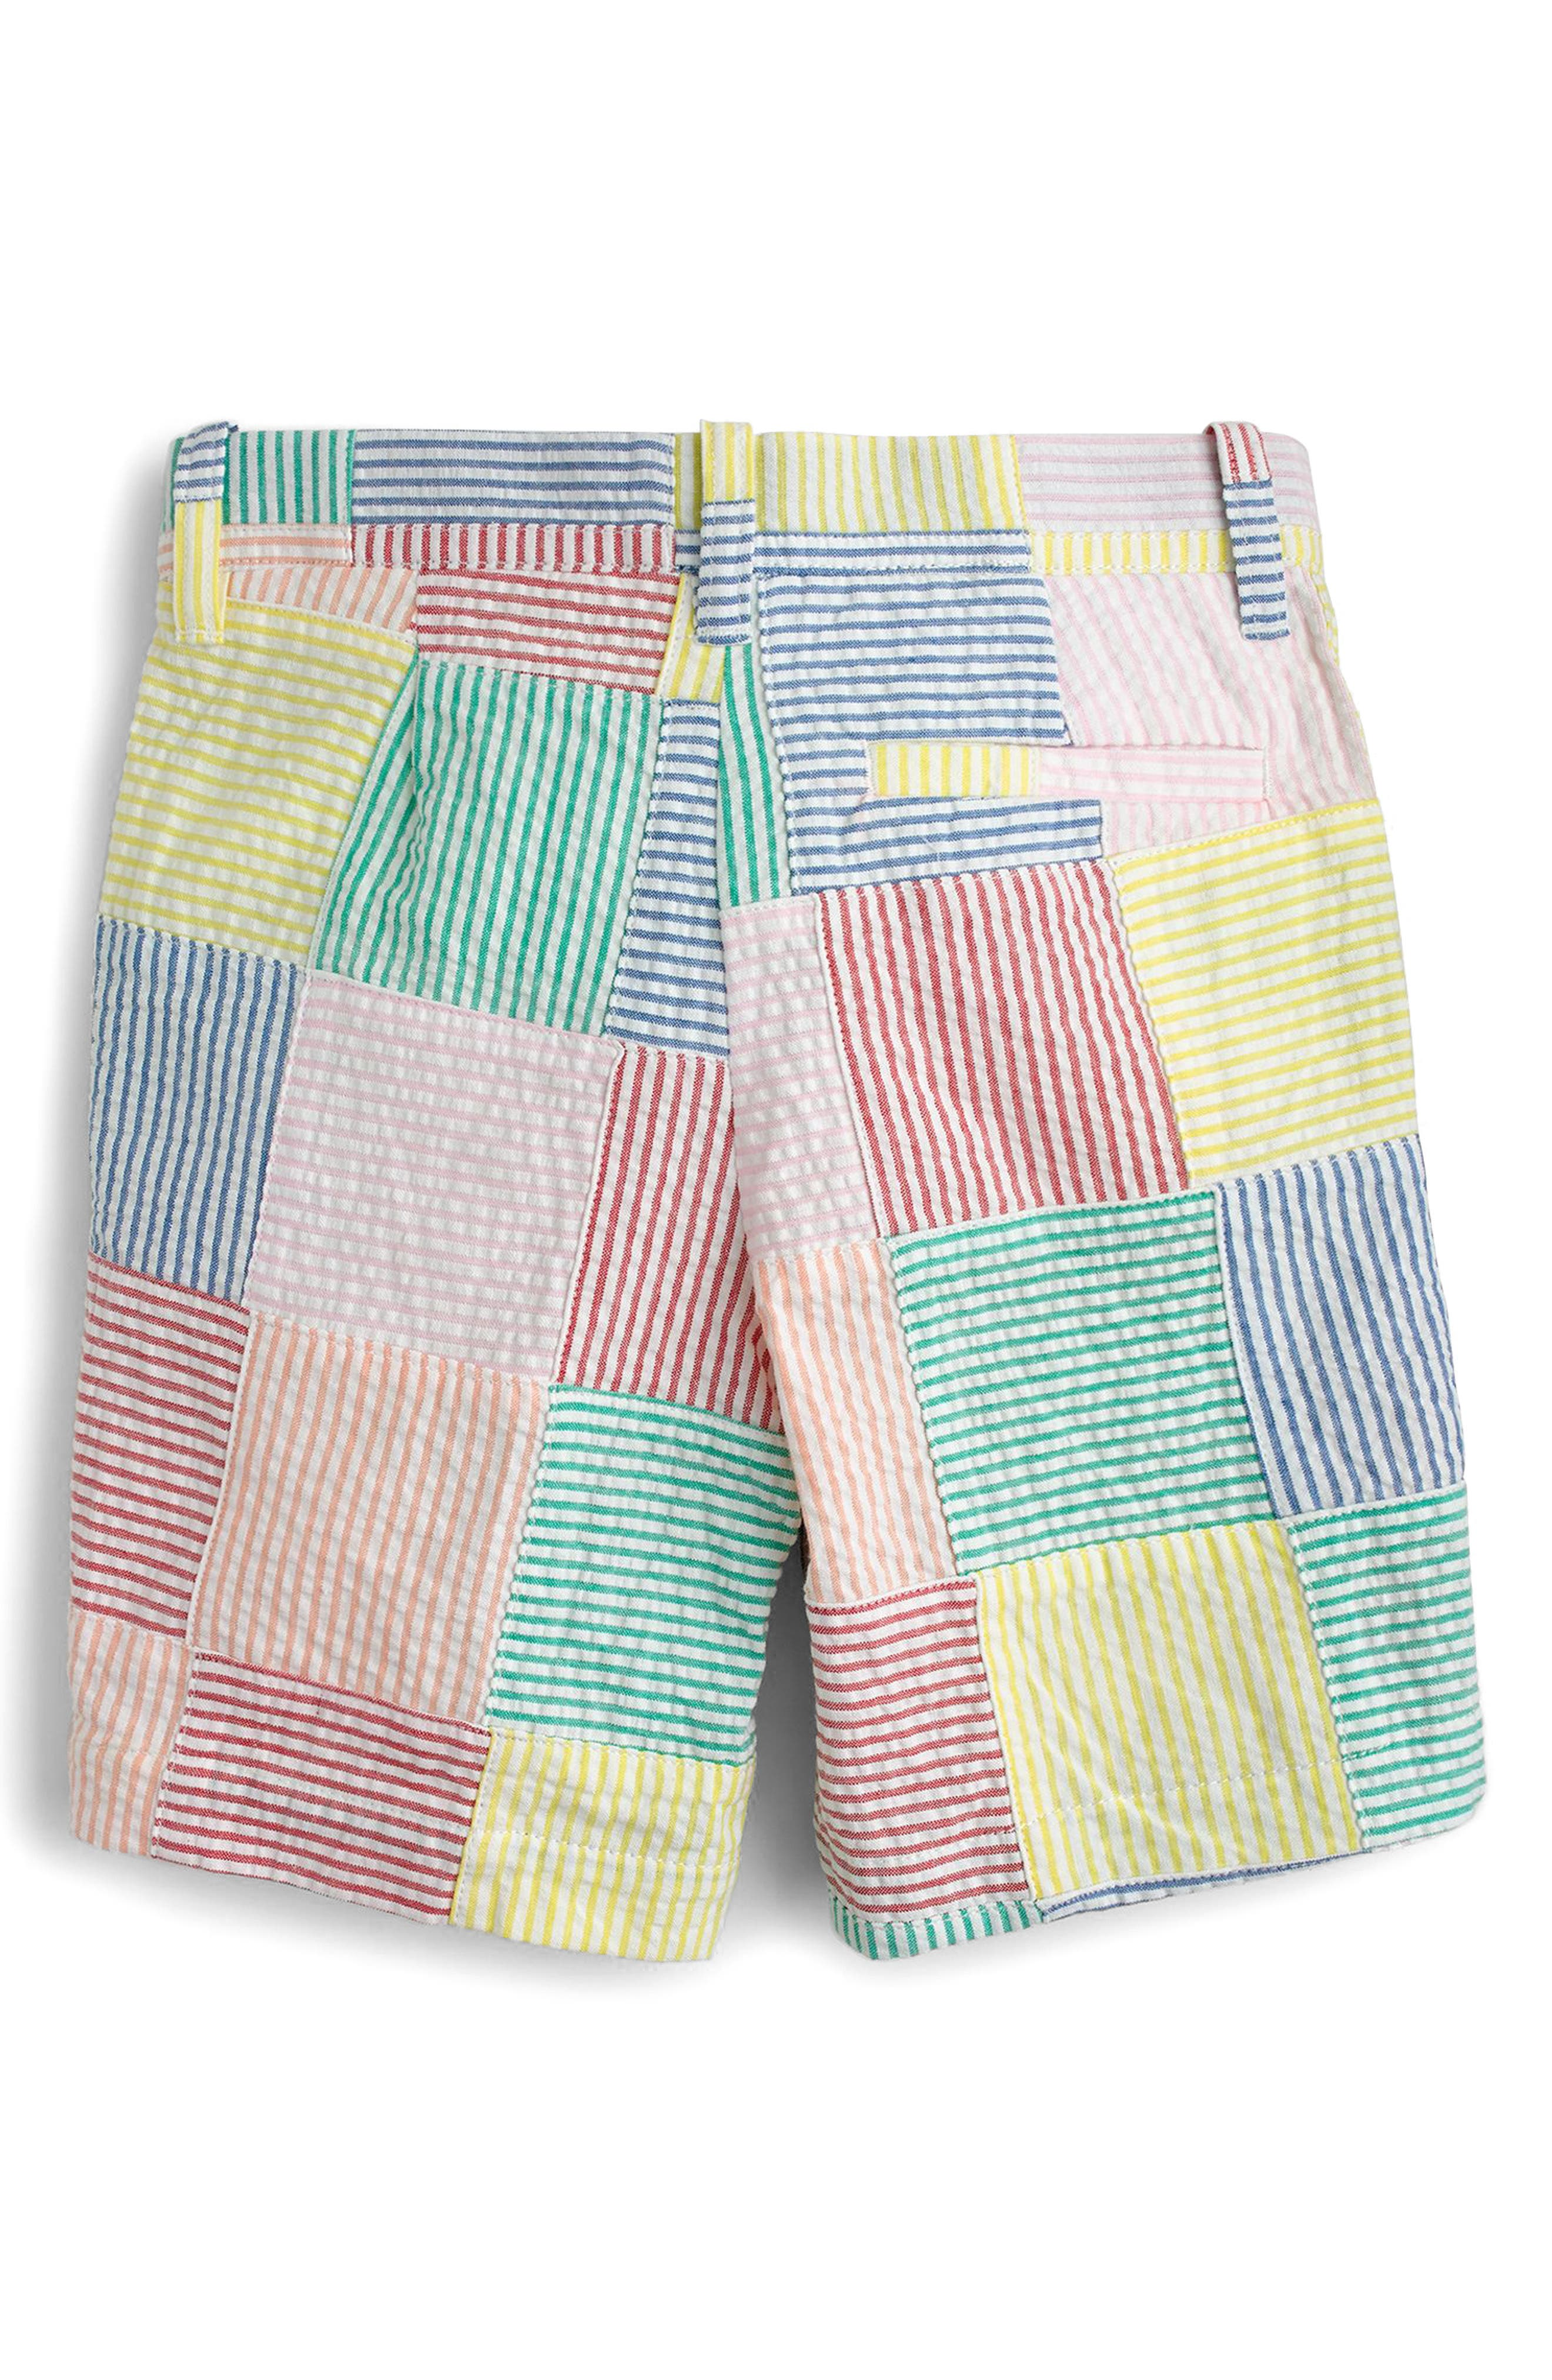 Crewcuts Stanton Patchwork Shorts,                             Alternate thumbnail 2, color,                             Ivory Multi